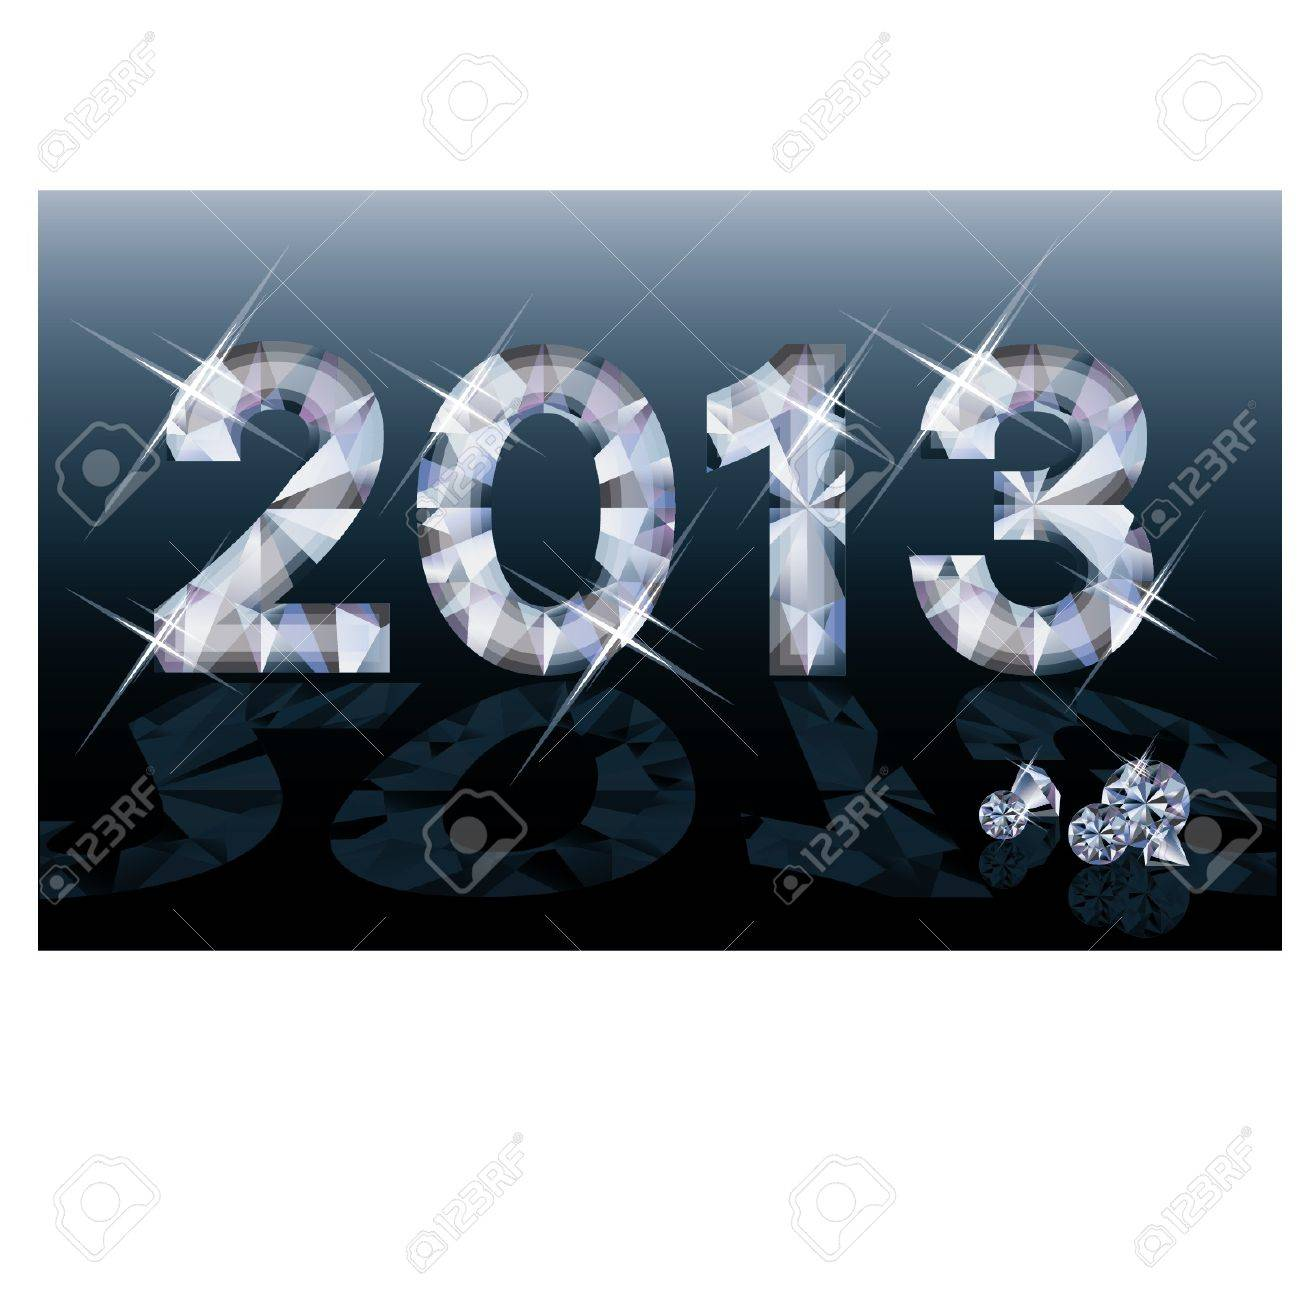 Diamond 2013 New year banner, vector illustration Stock Vector - 15090130